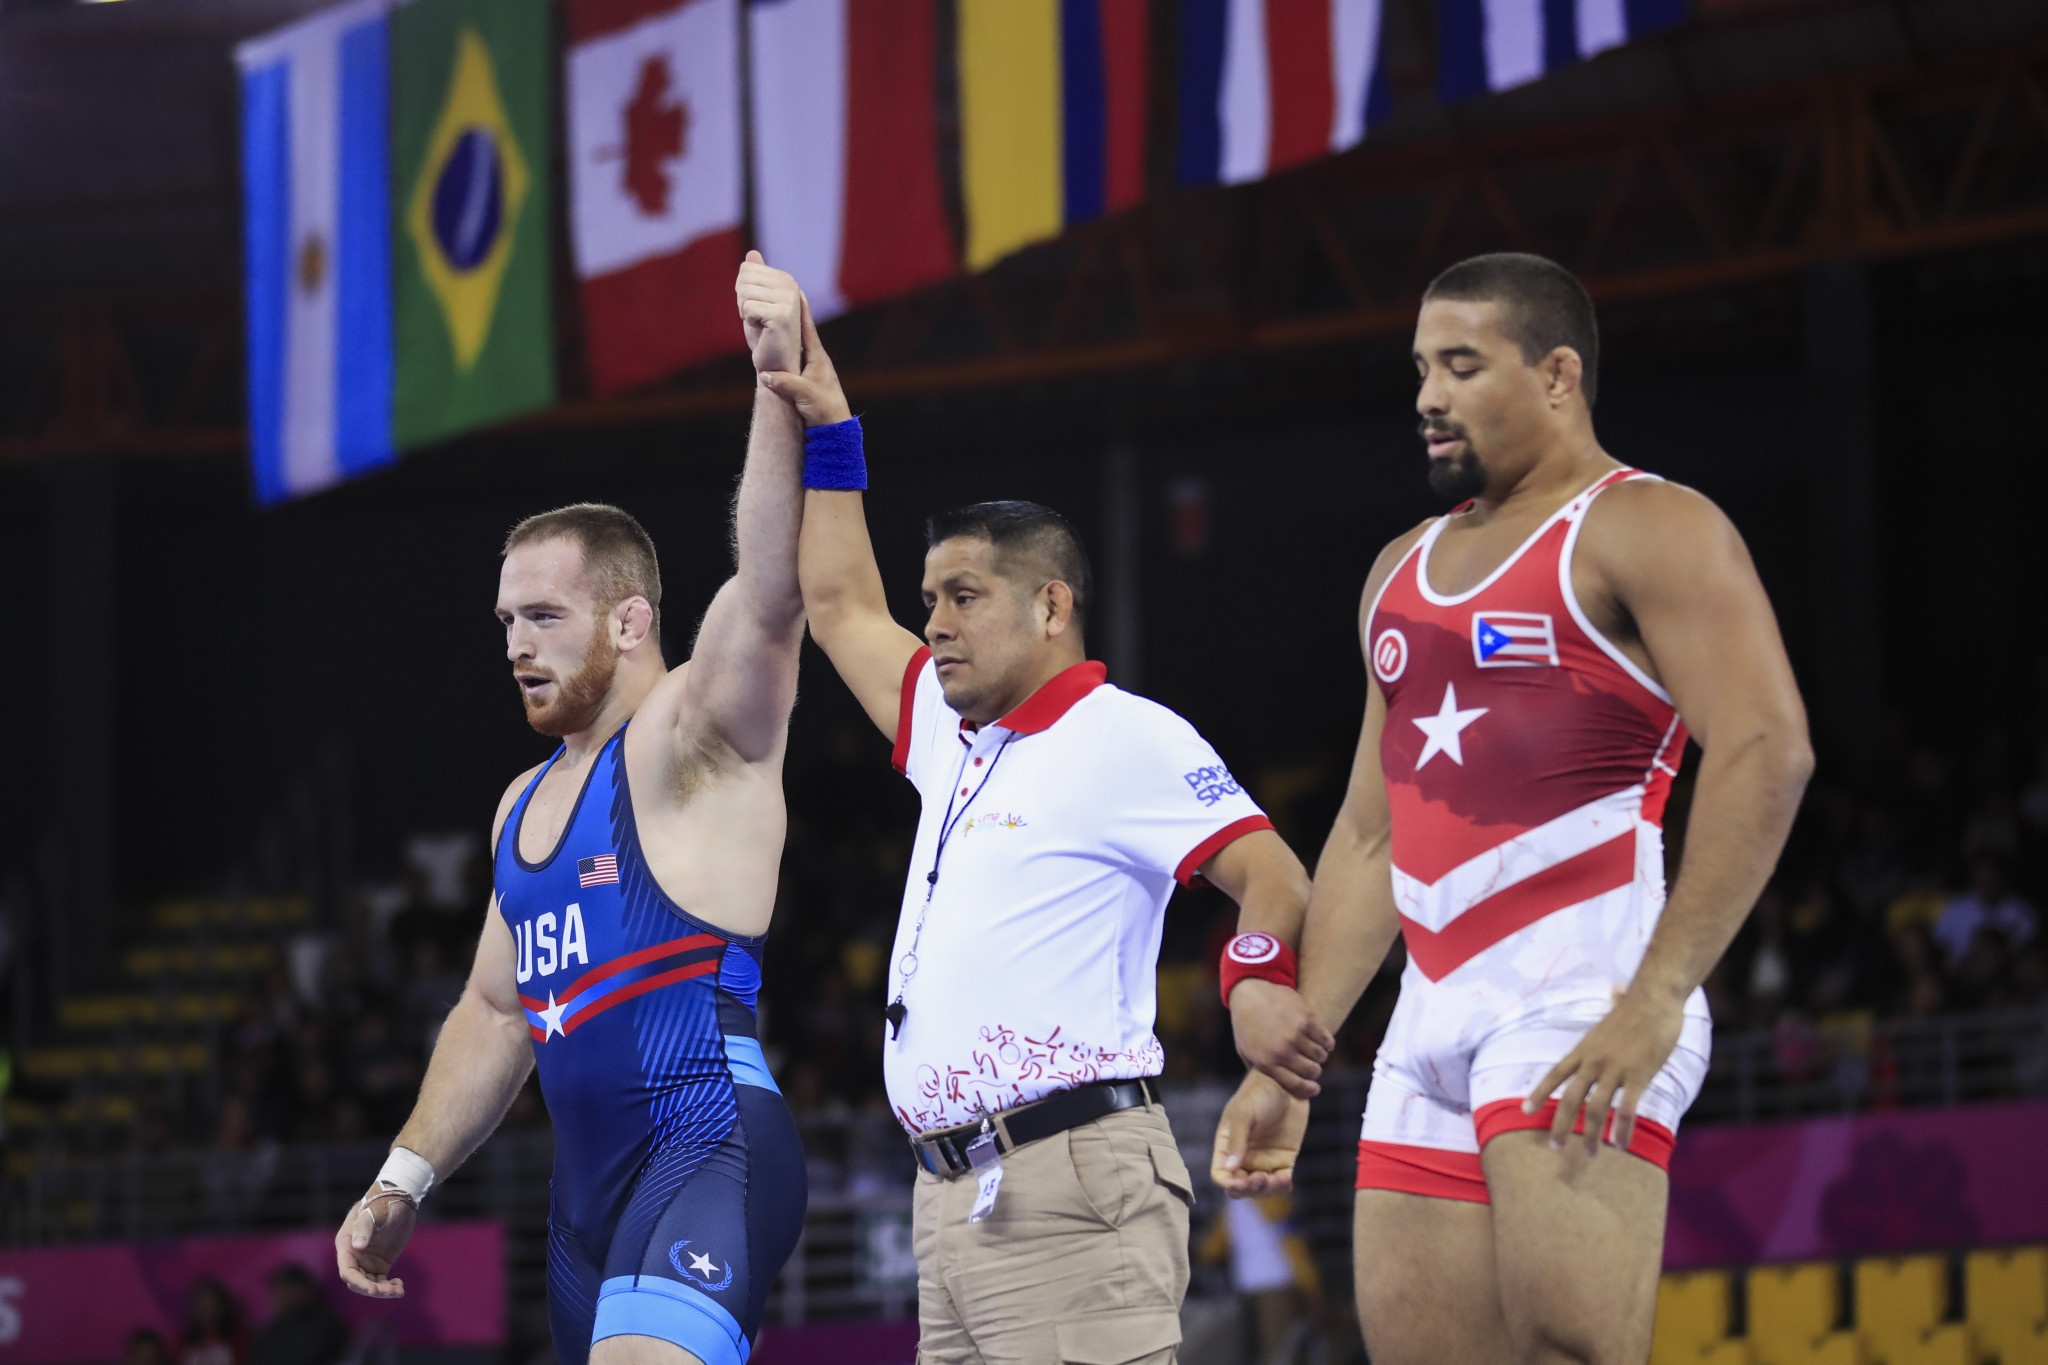 Olympic champion Snyder contributes to American golden hat-trick in Lima 2019 wrestling